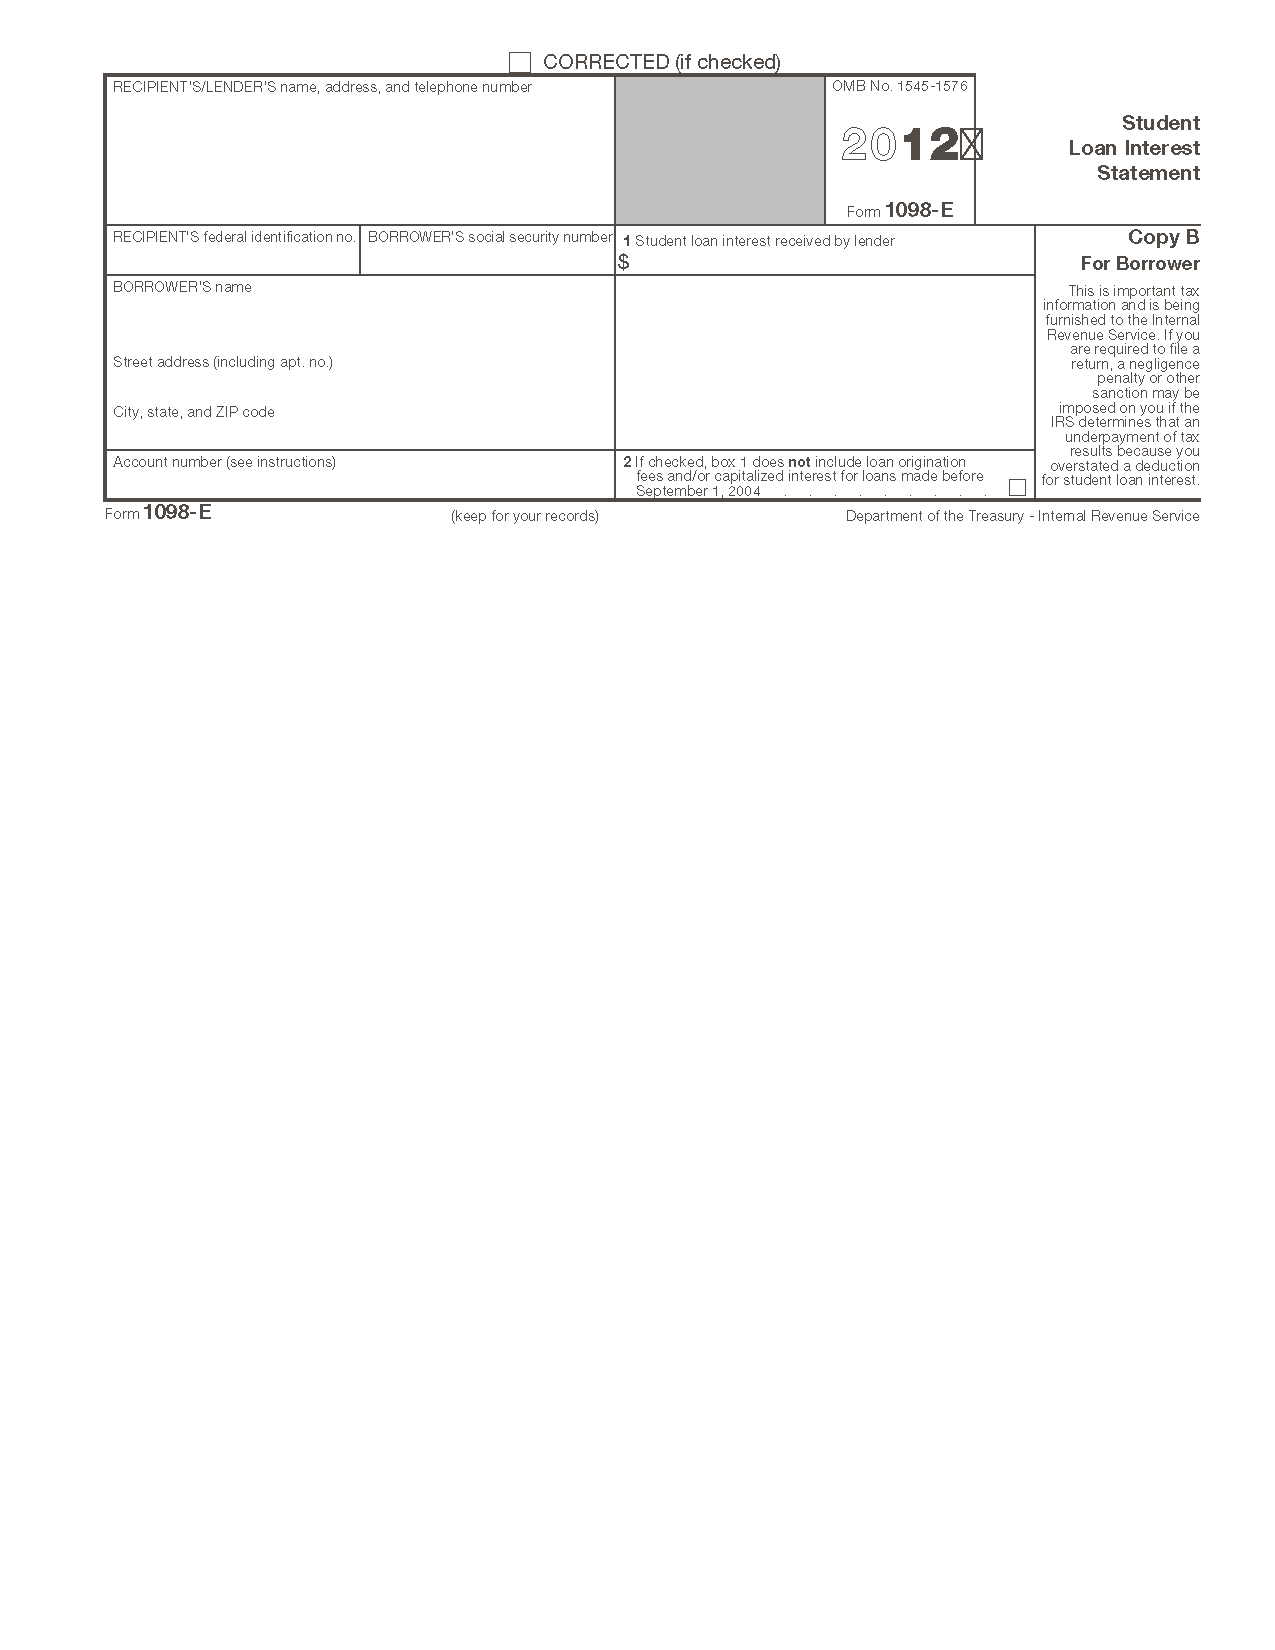 Form 1098 E Student Loan Interest Statement Info Copy Only